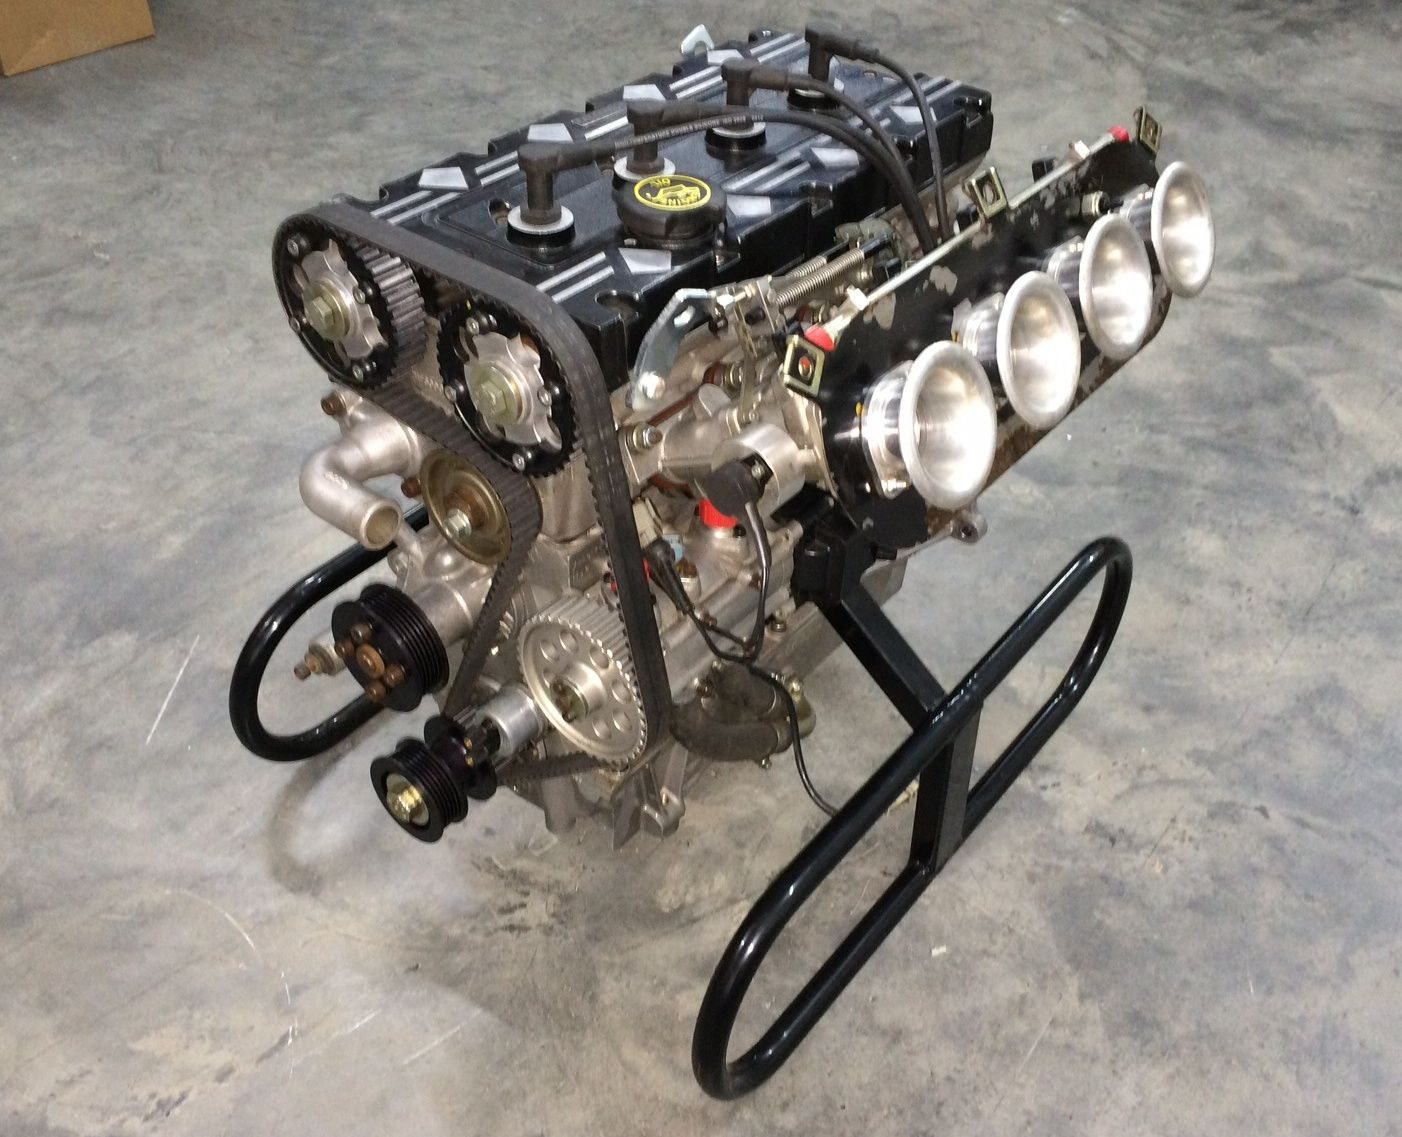 5L Millington Diamond engine, 16v twin cam based on the YB ...